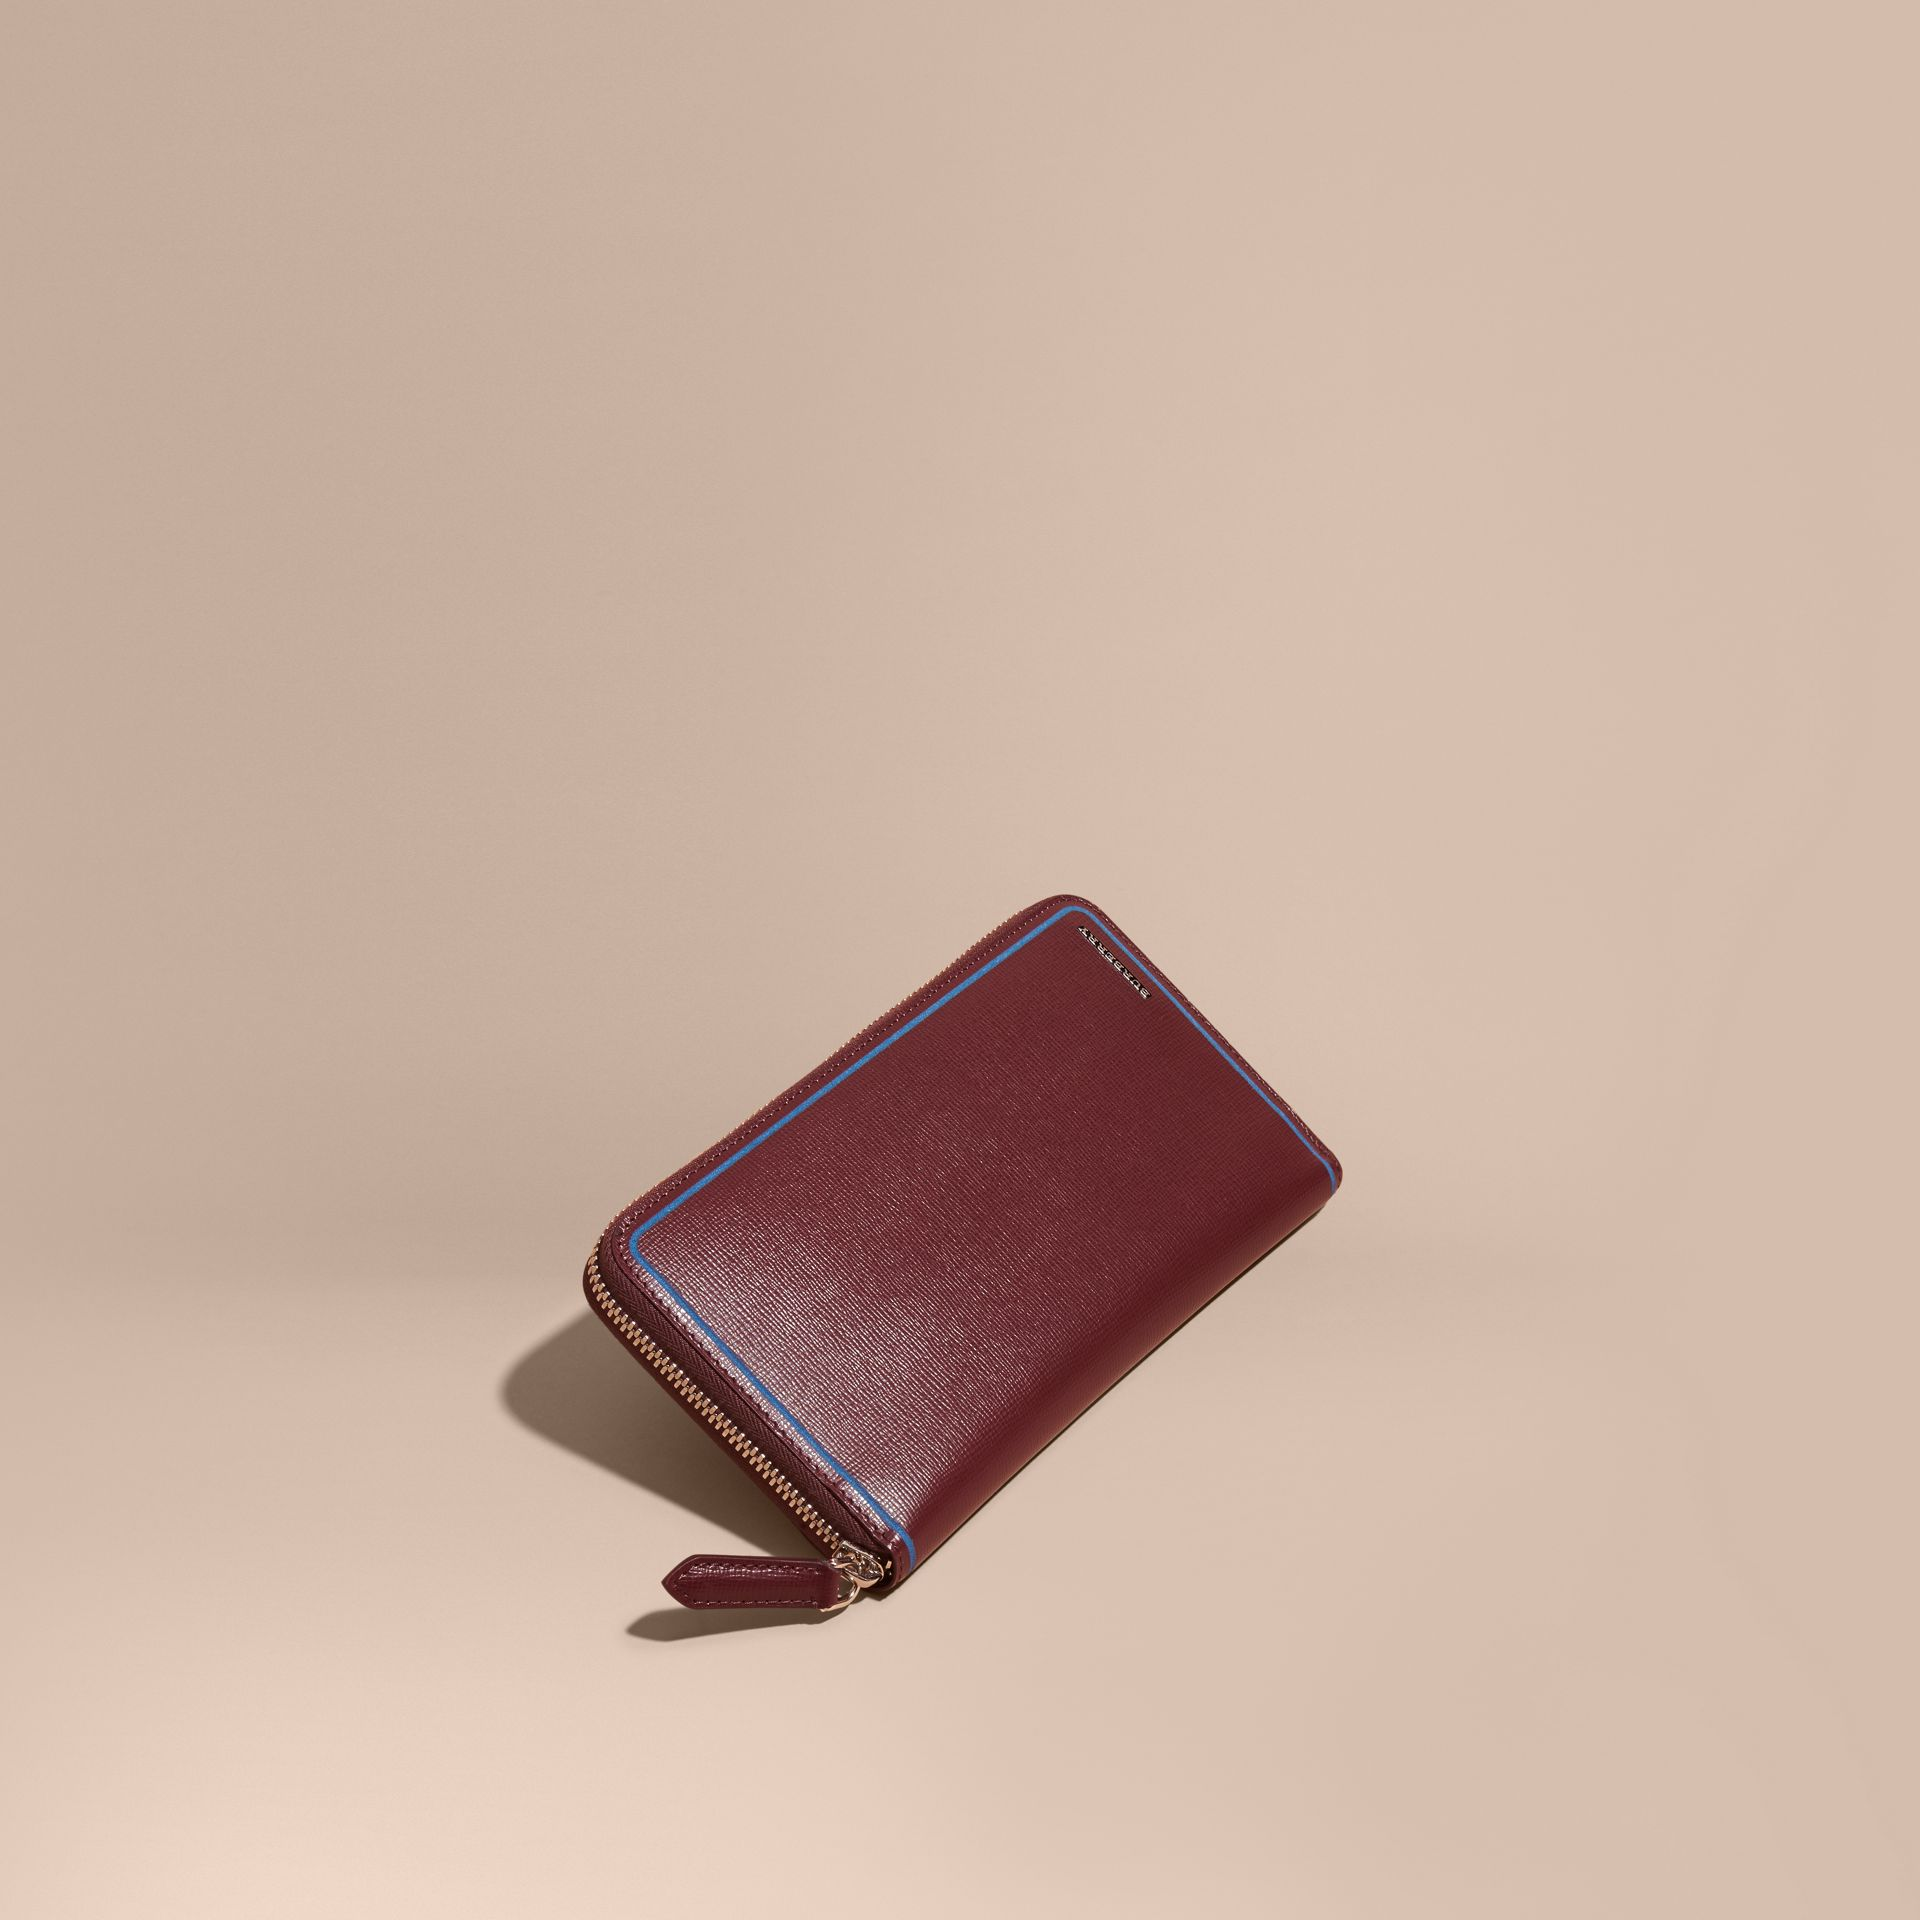 Border Detail London Leather Ziparound Wallet Burgundy Red - gallery image 1